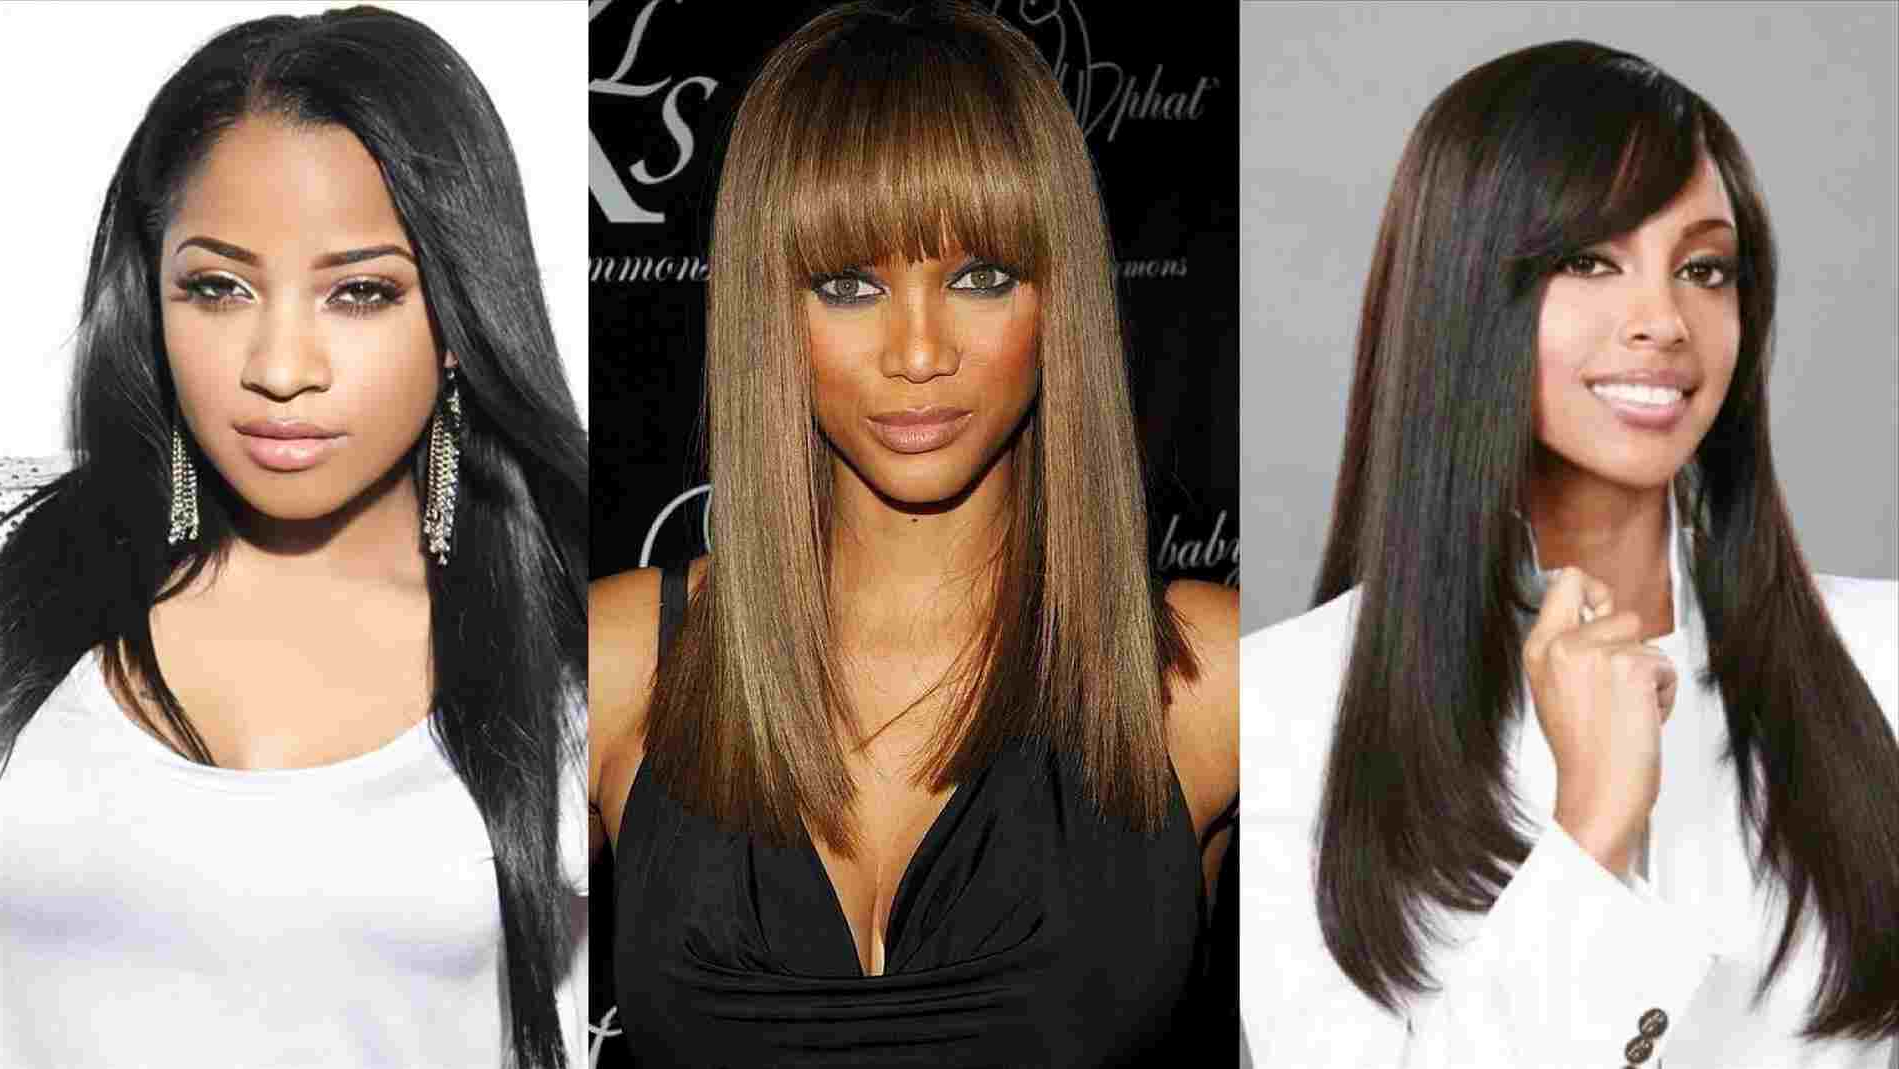 Short Hair Typesrhbeautyreflectionsblogcom Luxury Lovely Style Regarding Hairstyles For Black Teenage Girl With Short Hair (View 24 of 25)